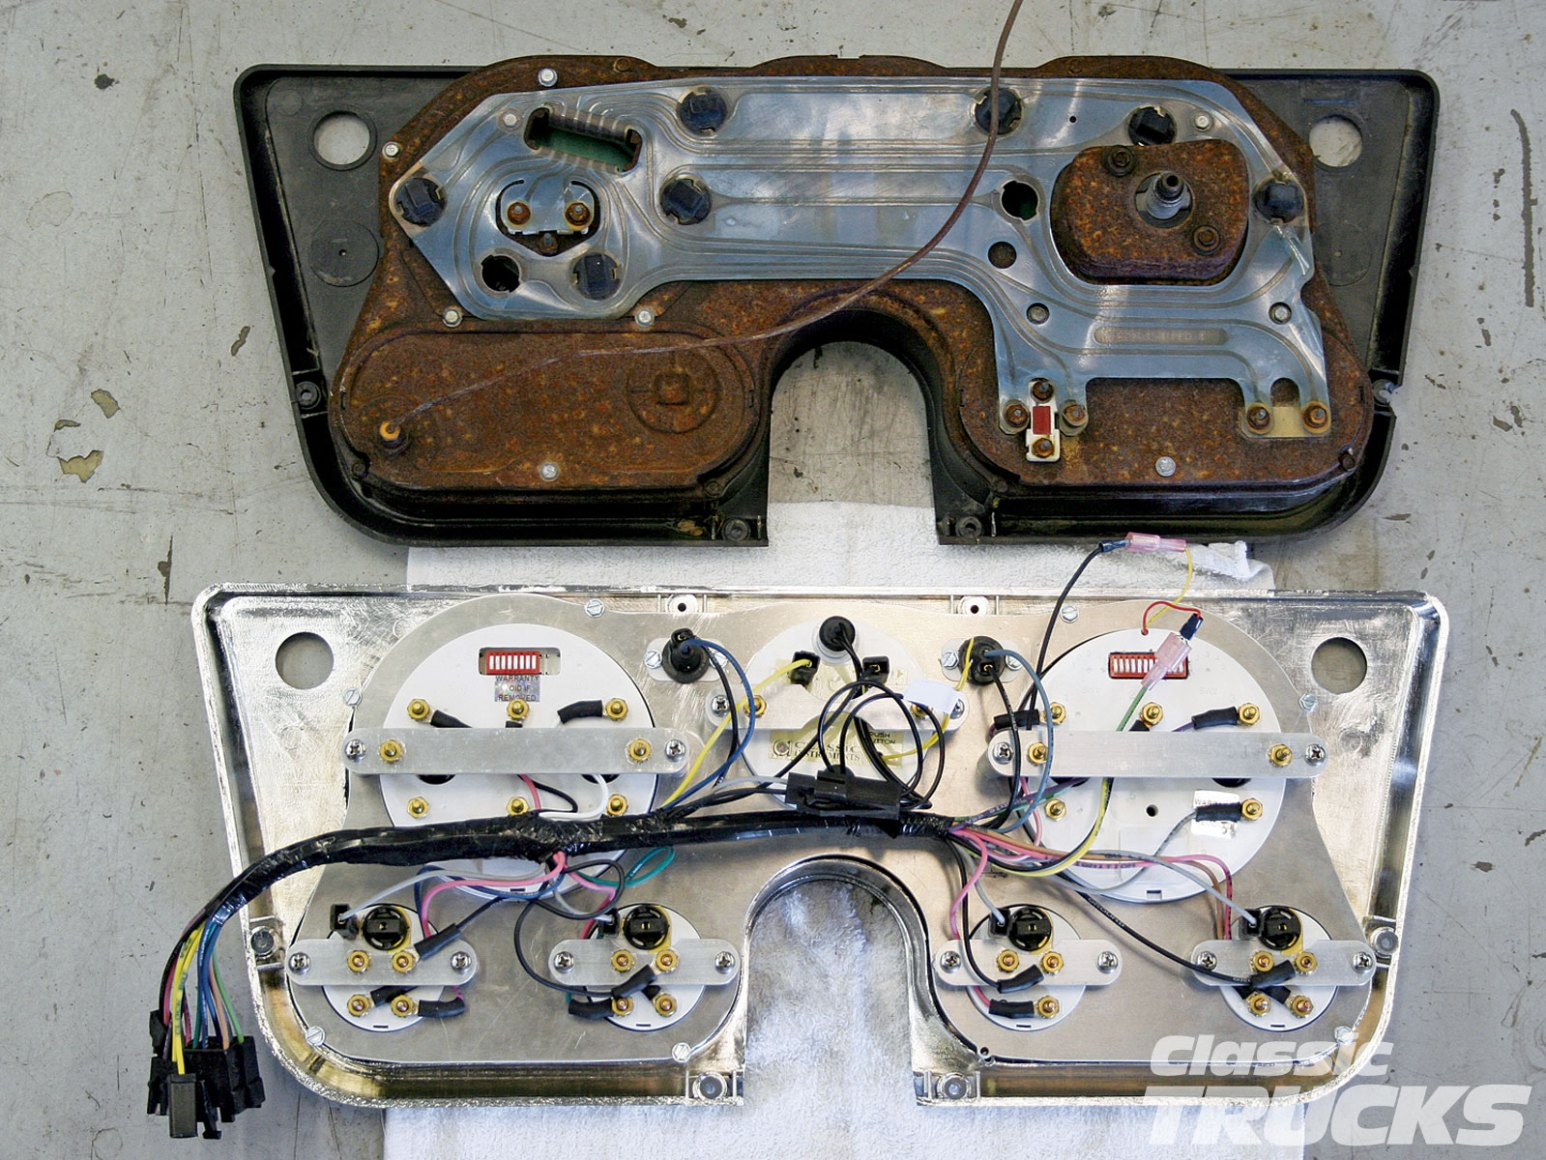 1972 chevy c10 wiring harness 1972 image wiring 1972 chevy c10 wiring diagram wiring diagram on 1972 chevy c10 wiring harness